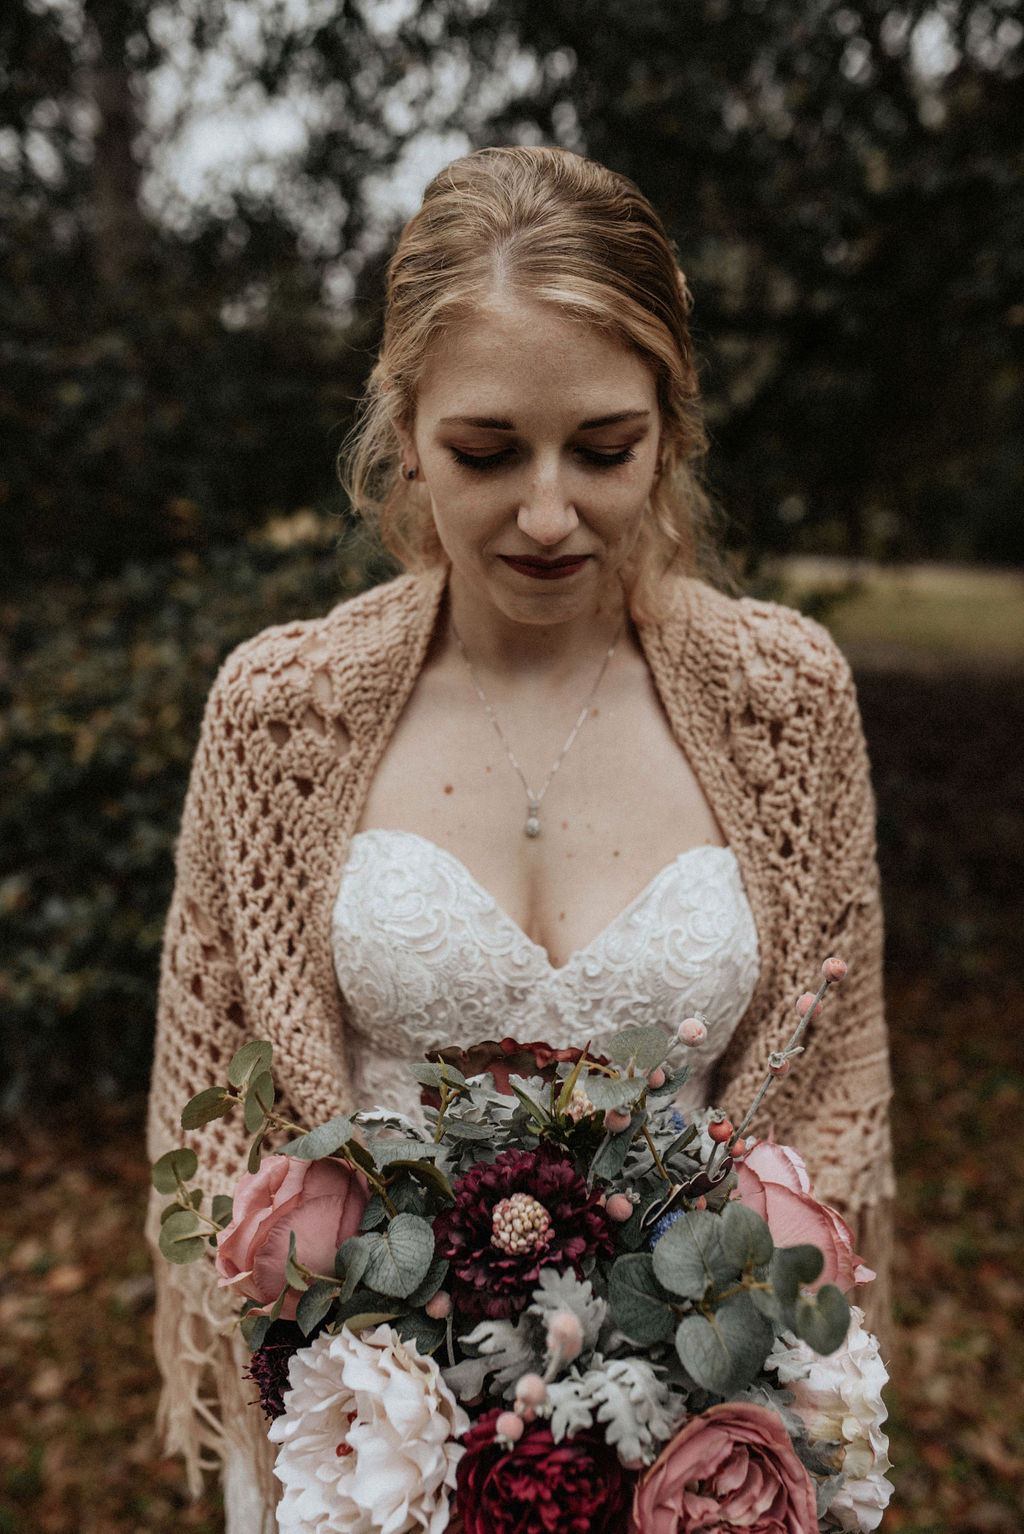 Bridal portrait: Magical Winter Wedding by Meghan Melia Photography featured on Nashville Bride Guide!